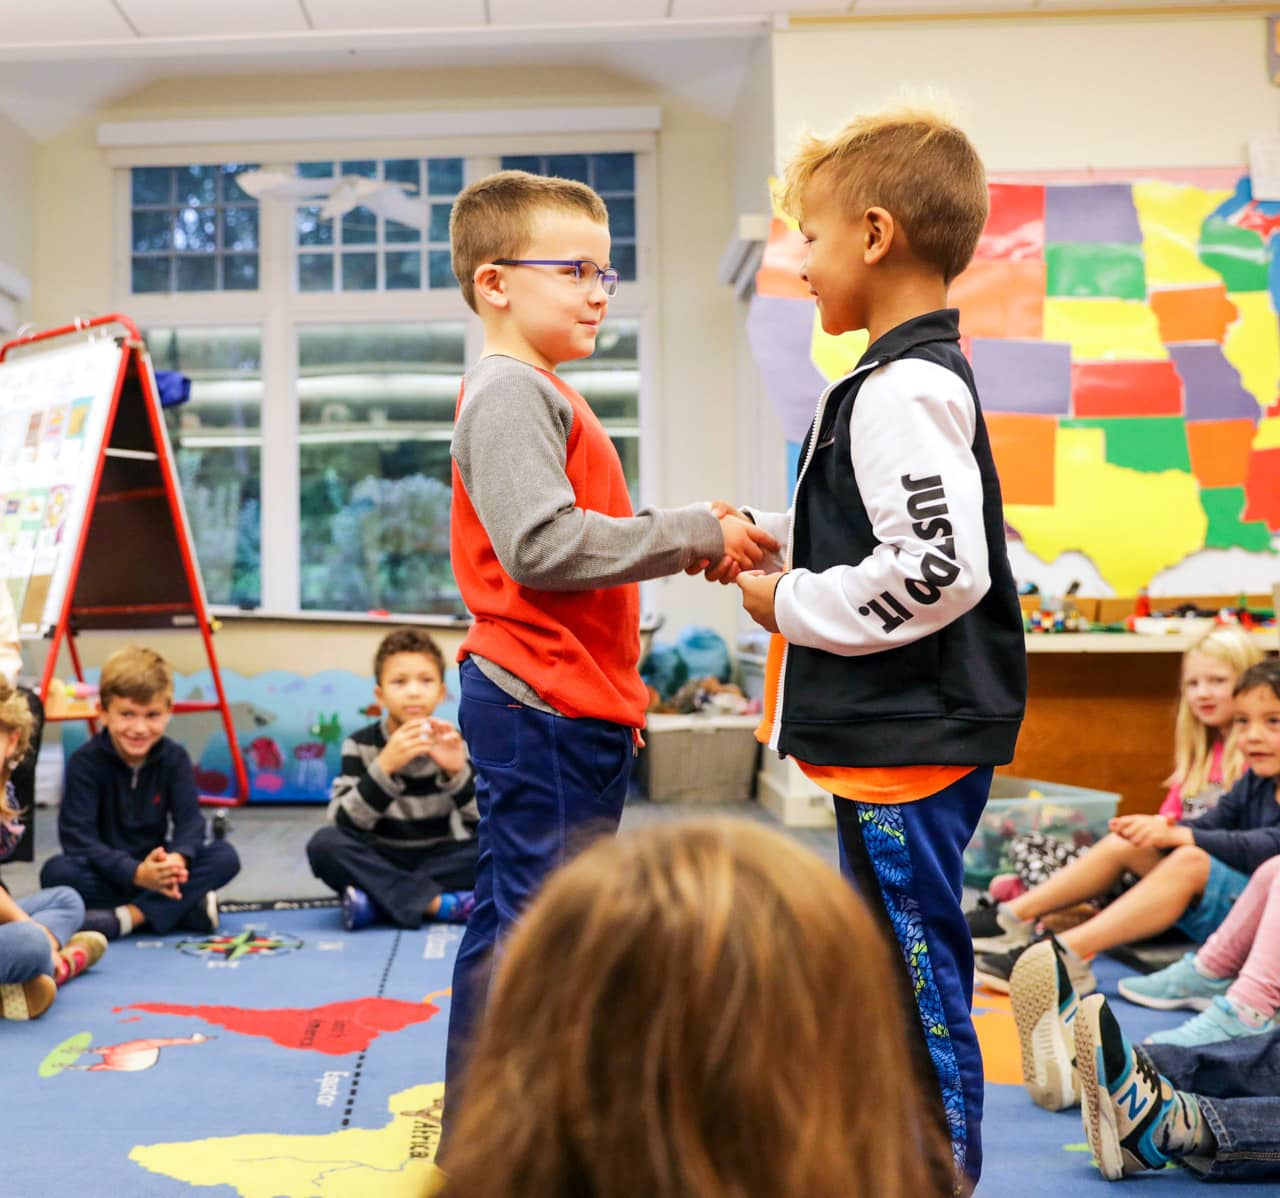 Young students shake hands in class